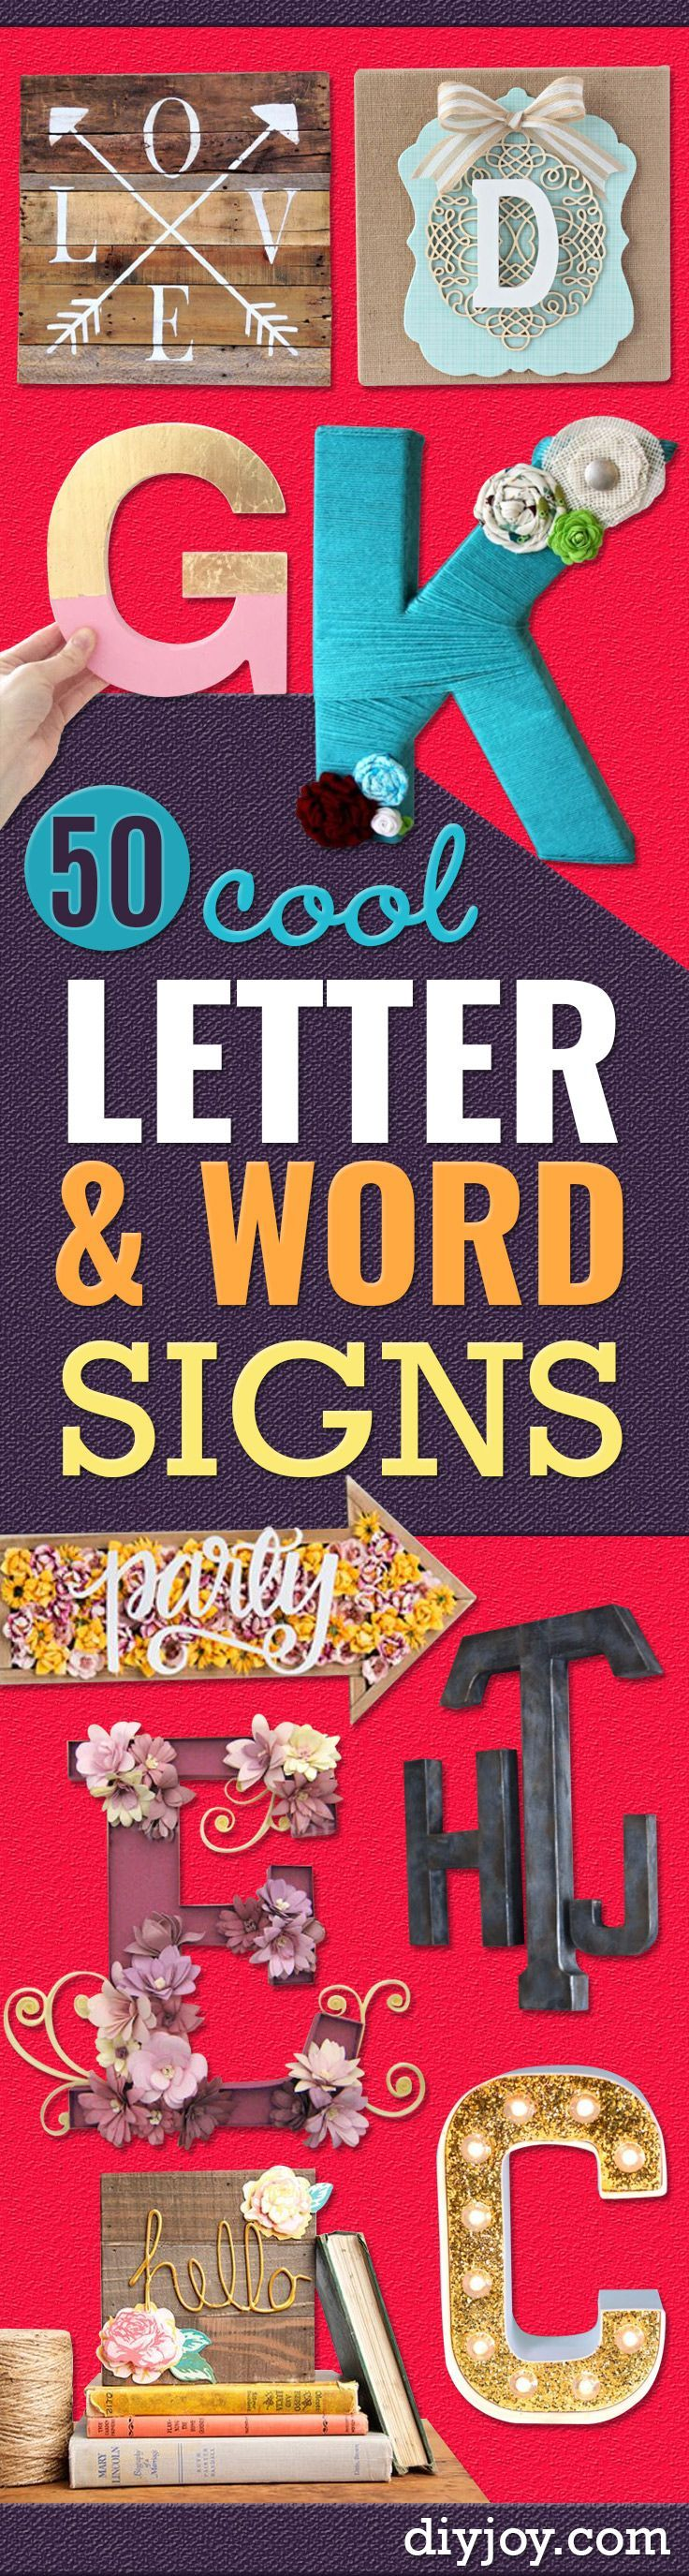 DIY Wall Letters and Word Signs - Initials Wall Art for Creative Home Decor Ideas - Cool Architectural Letter Projects and Wall Art Tutorials for Living Room Decor, Bedroom Ideas. Girl or Boy Nursery. Paint, Glitter, String Art, Easy Cardboard and Rustic Wooden Ideas - DIY Projects and Crafts by DIY JOY http://diyjoy.com/diy-letter-word-signs